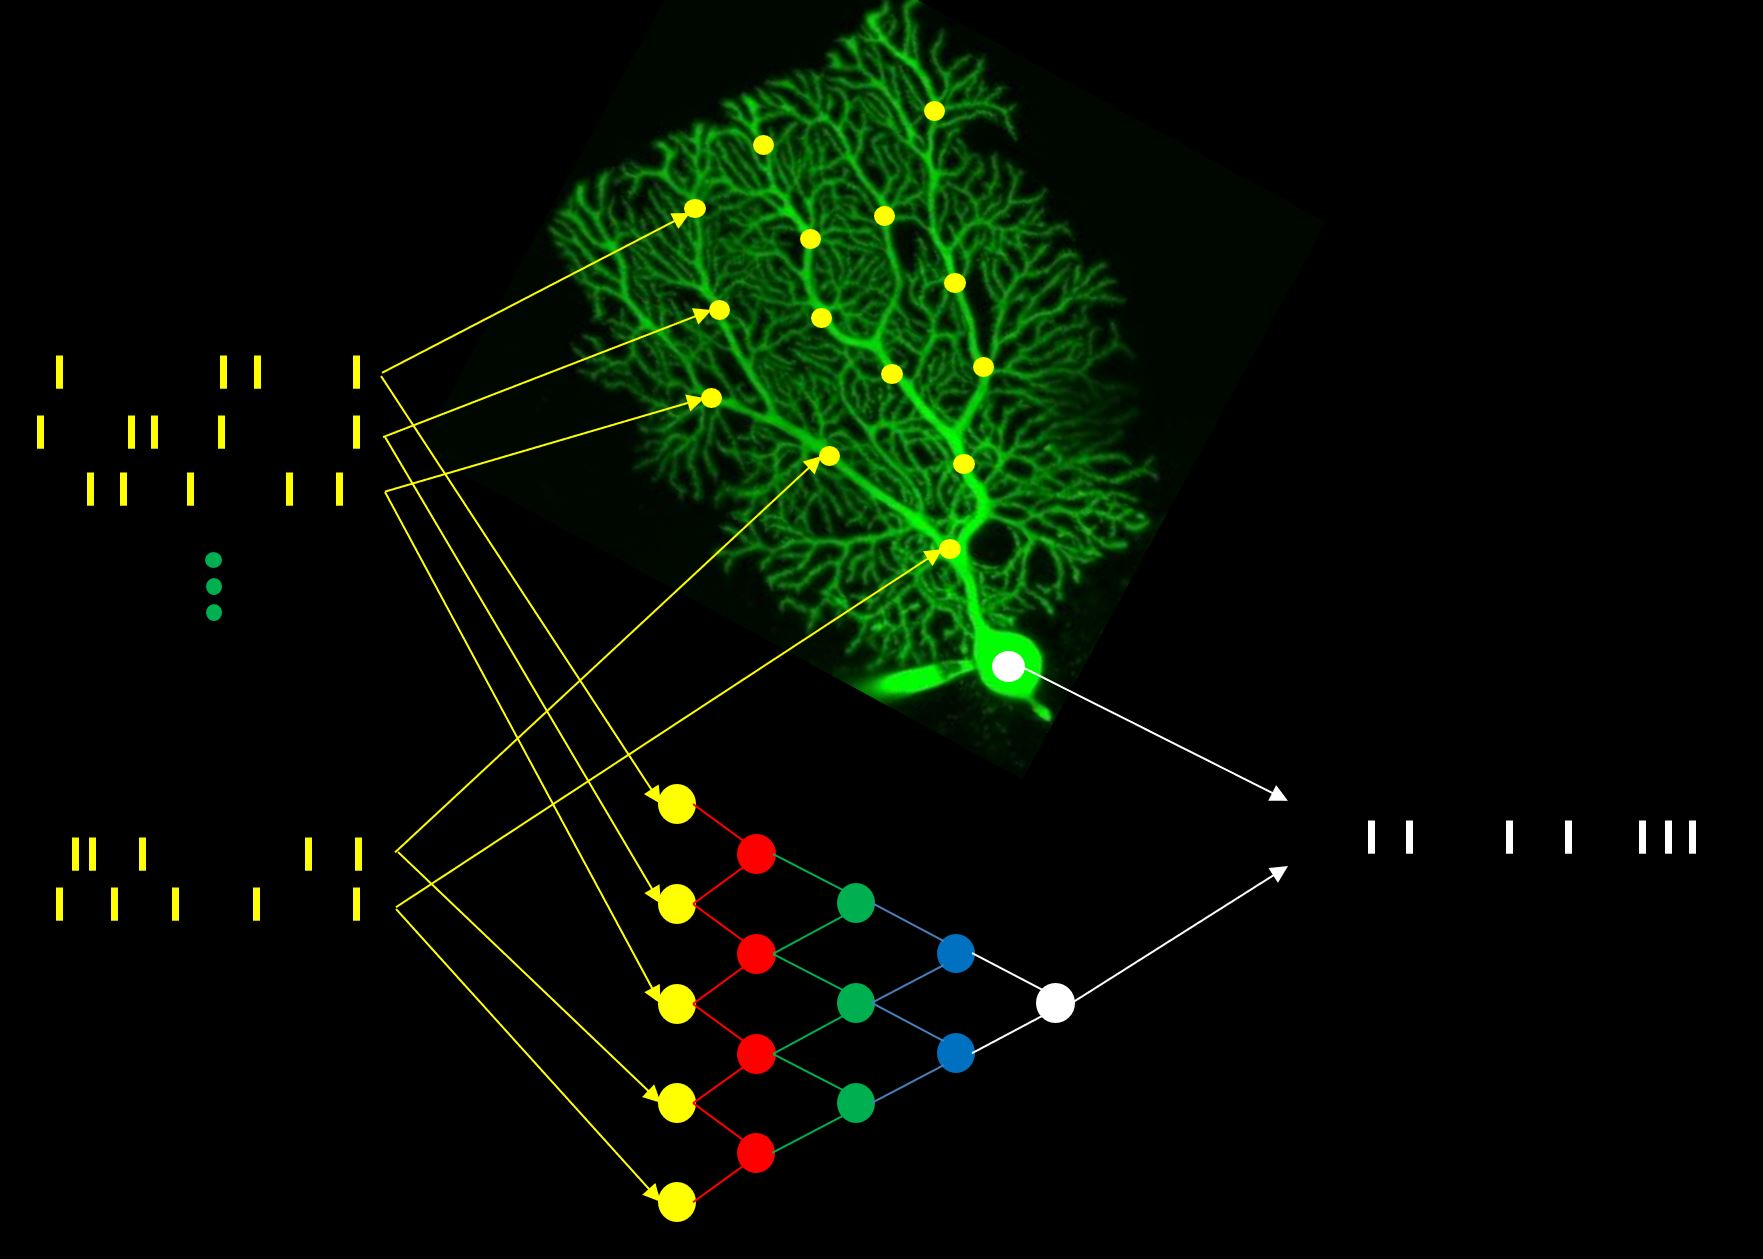 single biological neurons as deep artificial neural networks.